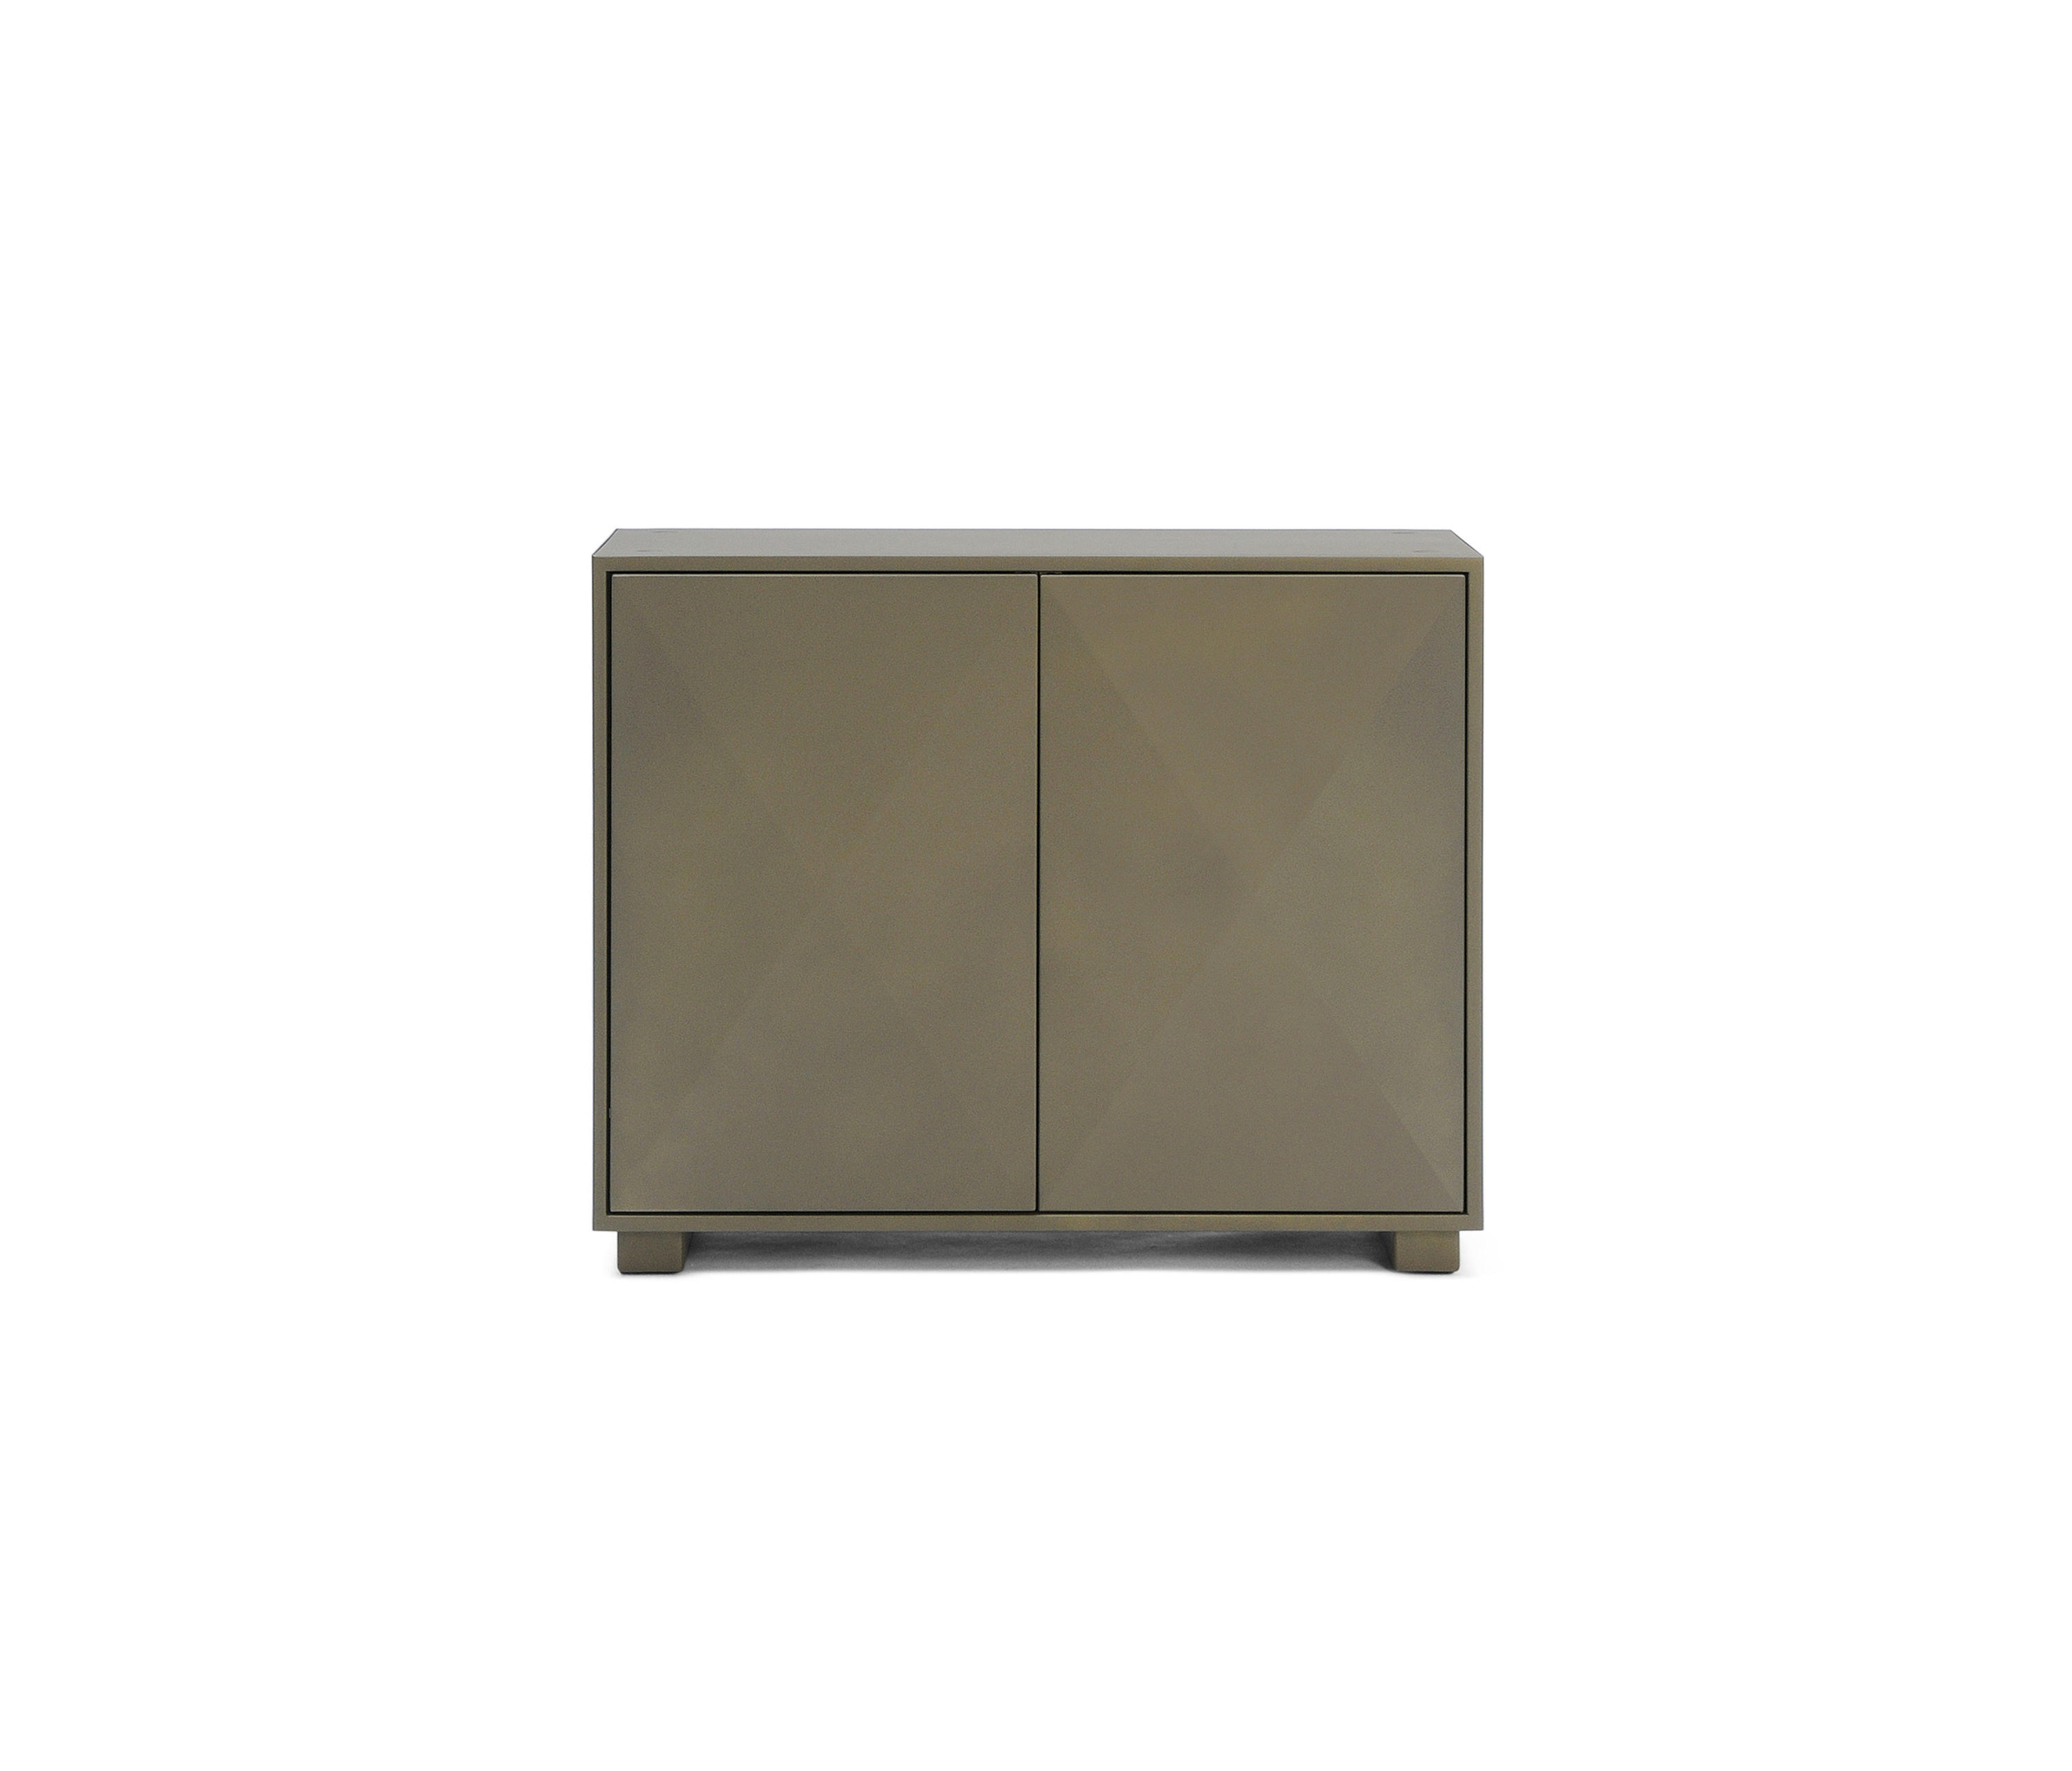 Mobilier Home Studio Diamant Cabinet Cabinets From Tolix Architonic